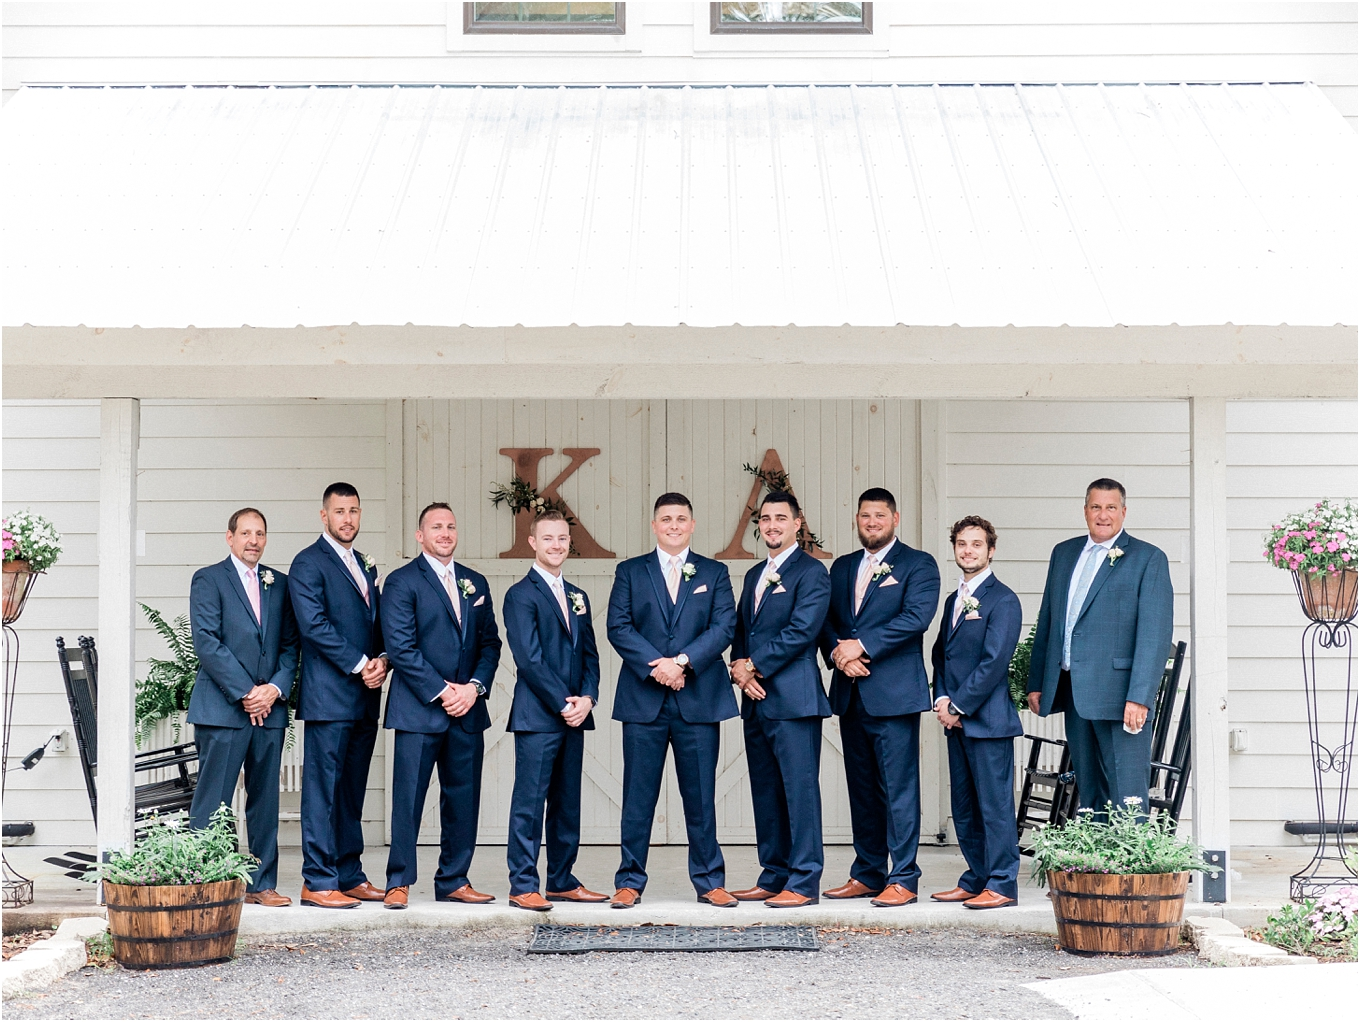 Lisa Silva Photography- Ponte Vedra Beach, St. Augustine and Jacksonville, Florida Fine Art Film Wedding and Boudoir Photography- Elegant Blush and Navy Wedding at Chandler Oaks Barn in St. Augustine, Florida_0046.jpg